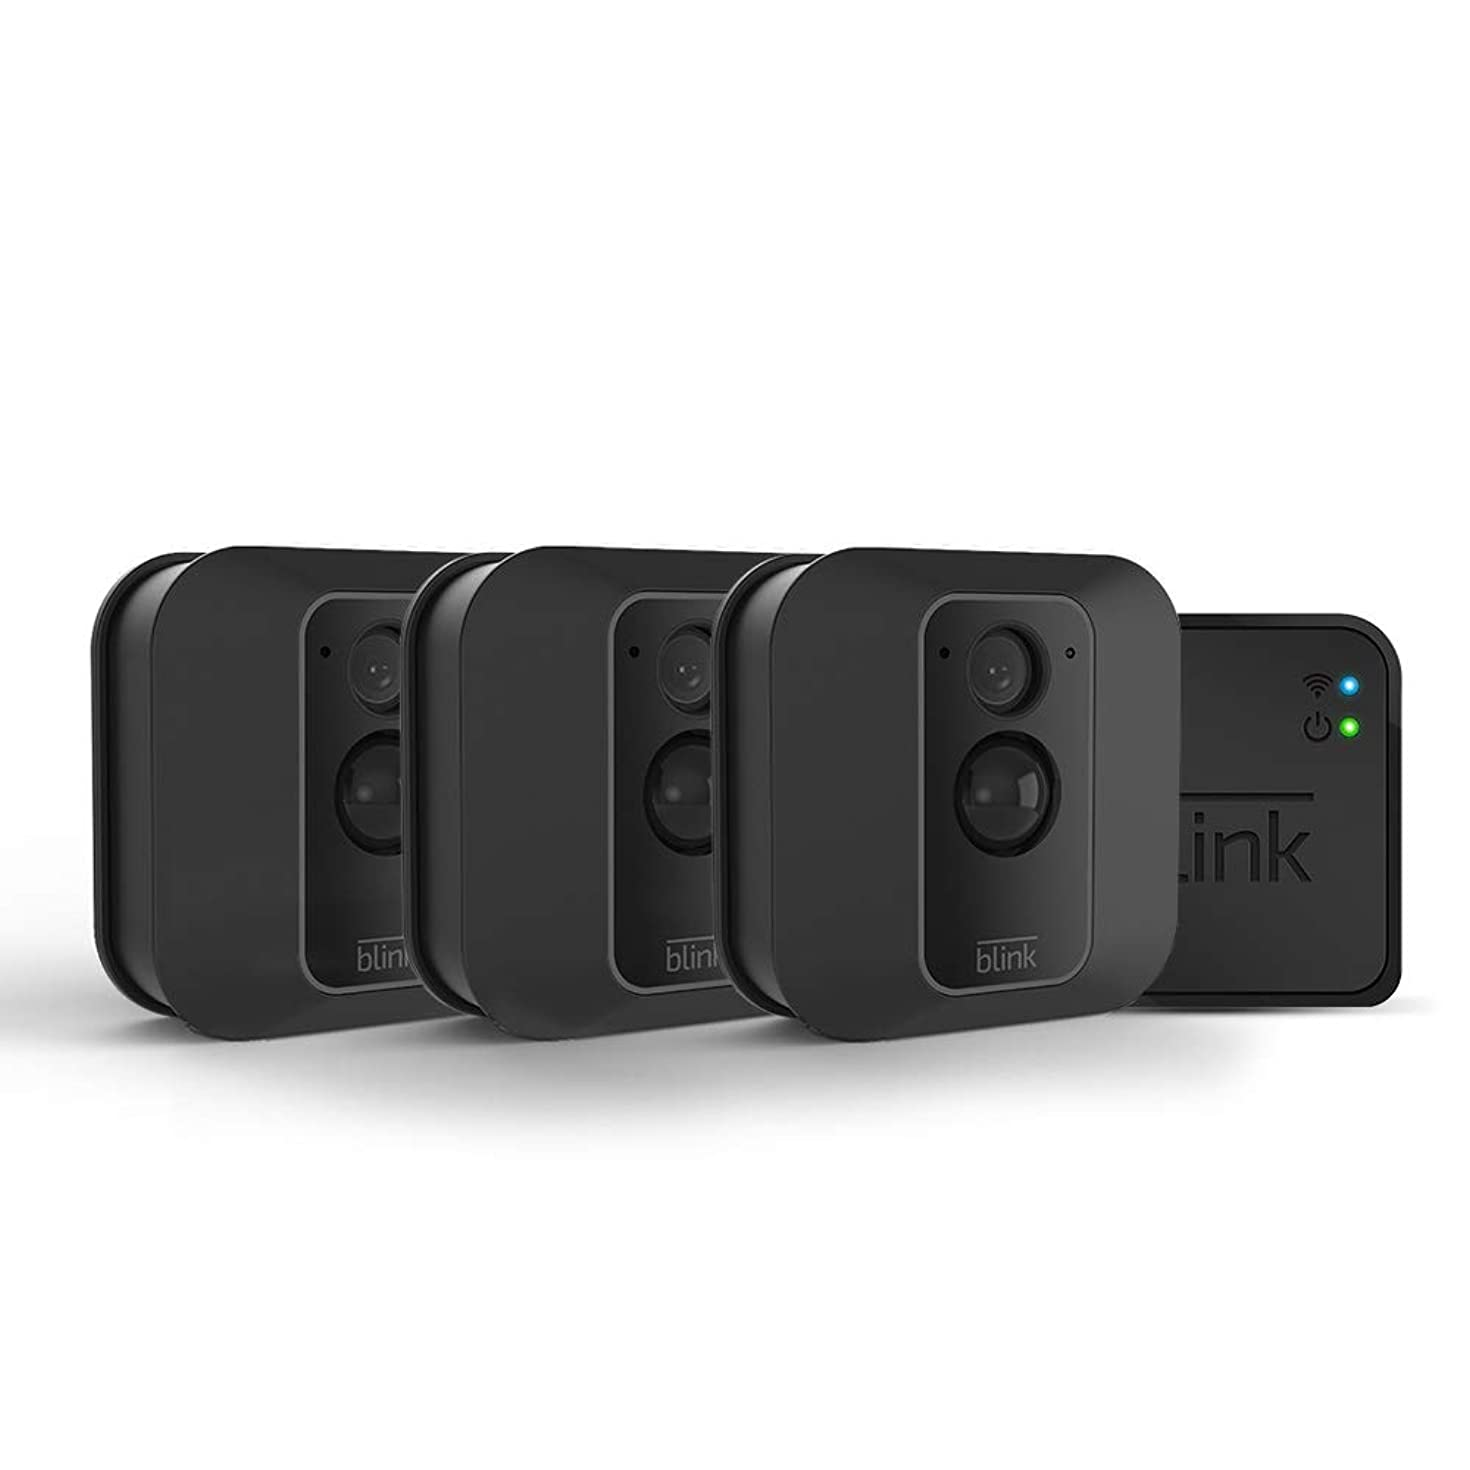 All-new Blink XT2 Outdoor/Indoor Smart Security Camera with cloud storage included, 2-way audio, 2-year battery life – 3 camera kit